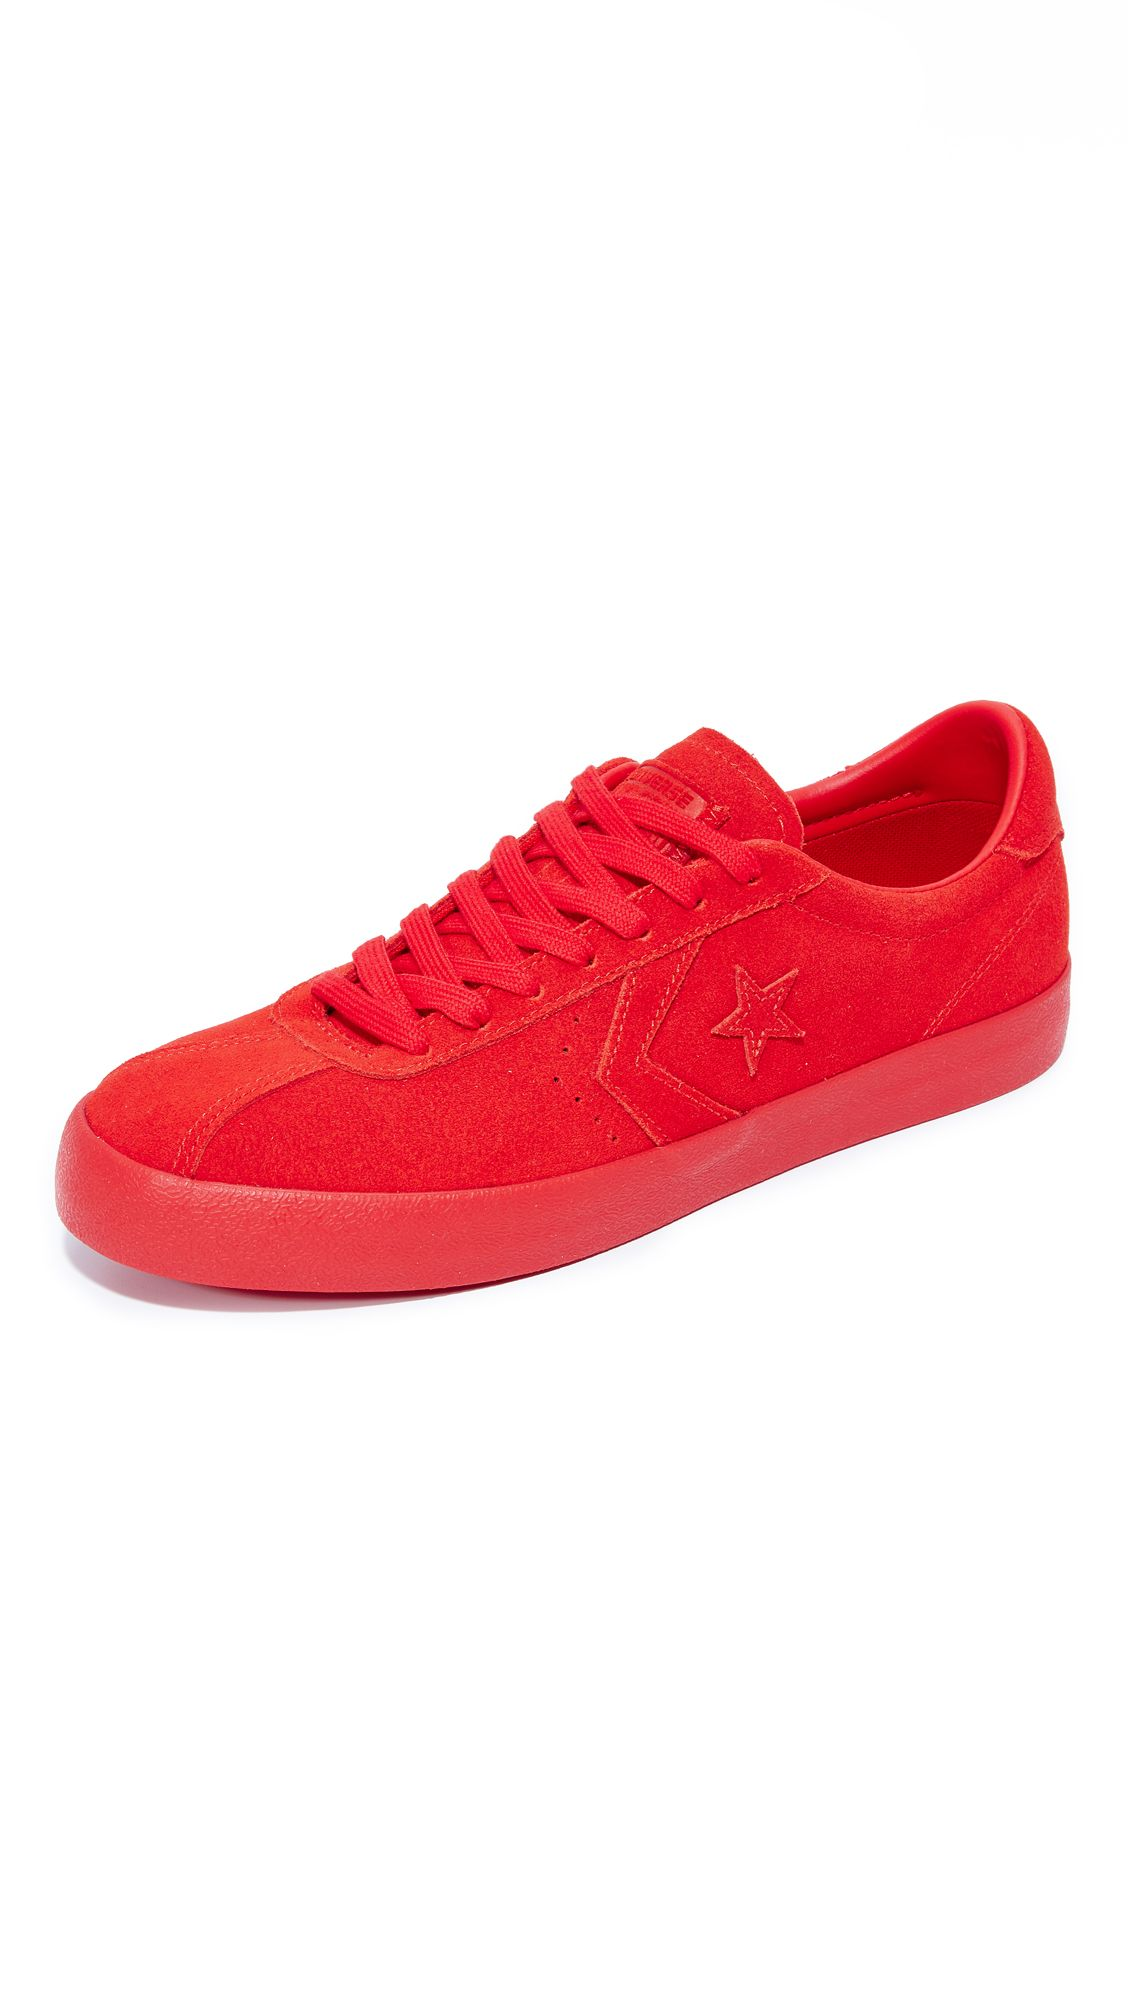 CONVERSE Pro Leather Breakpoint Suede Sneakers.  converse  shoes  sneakers 332f069bb